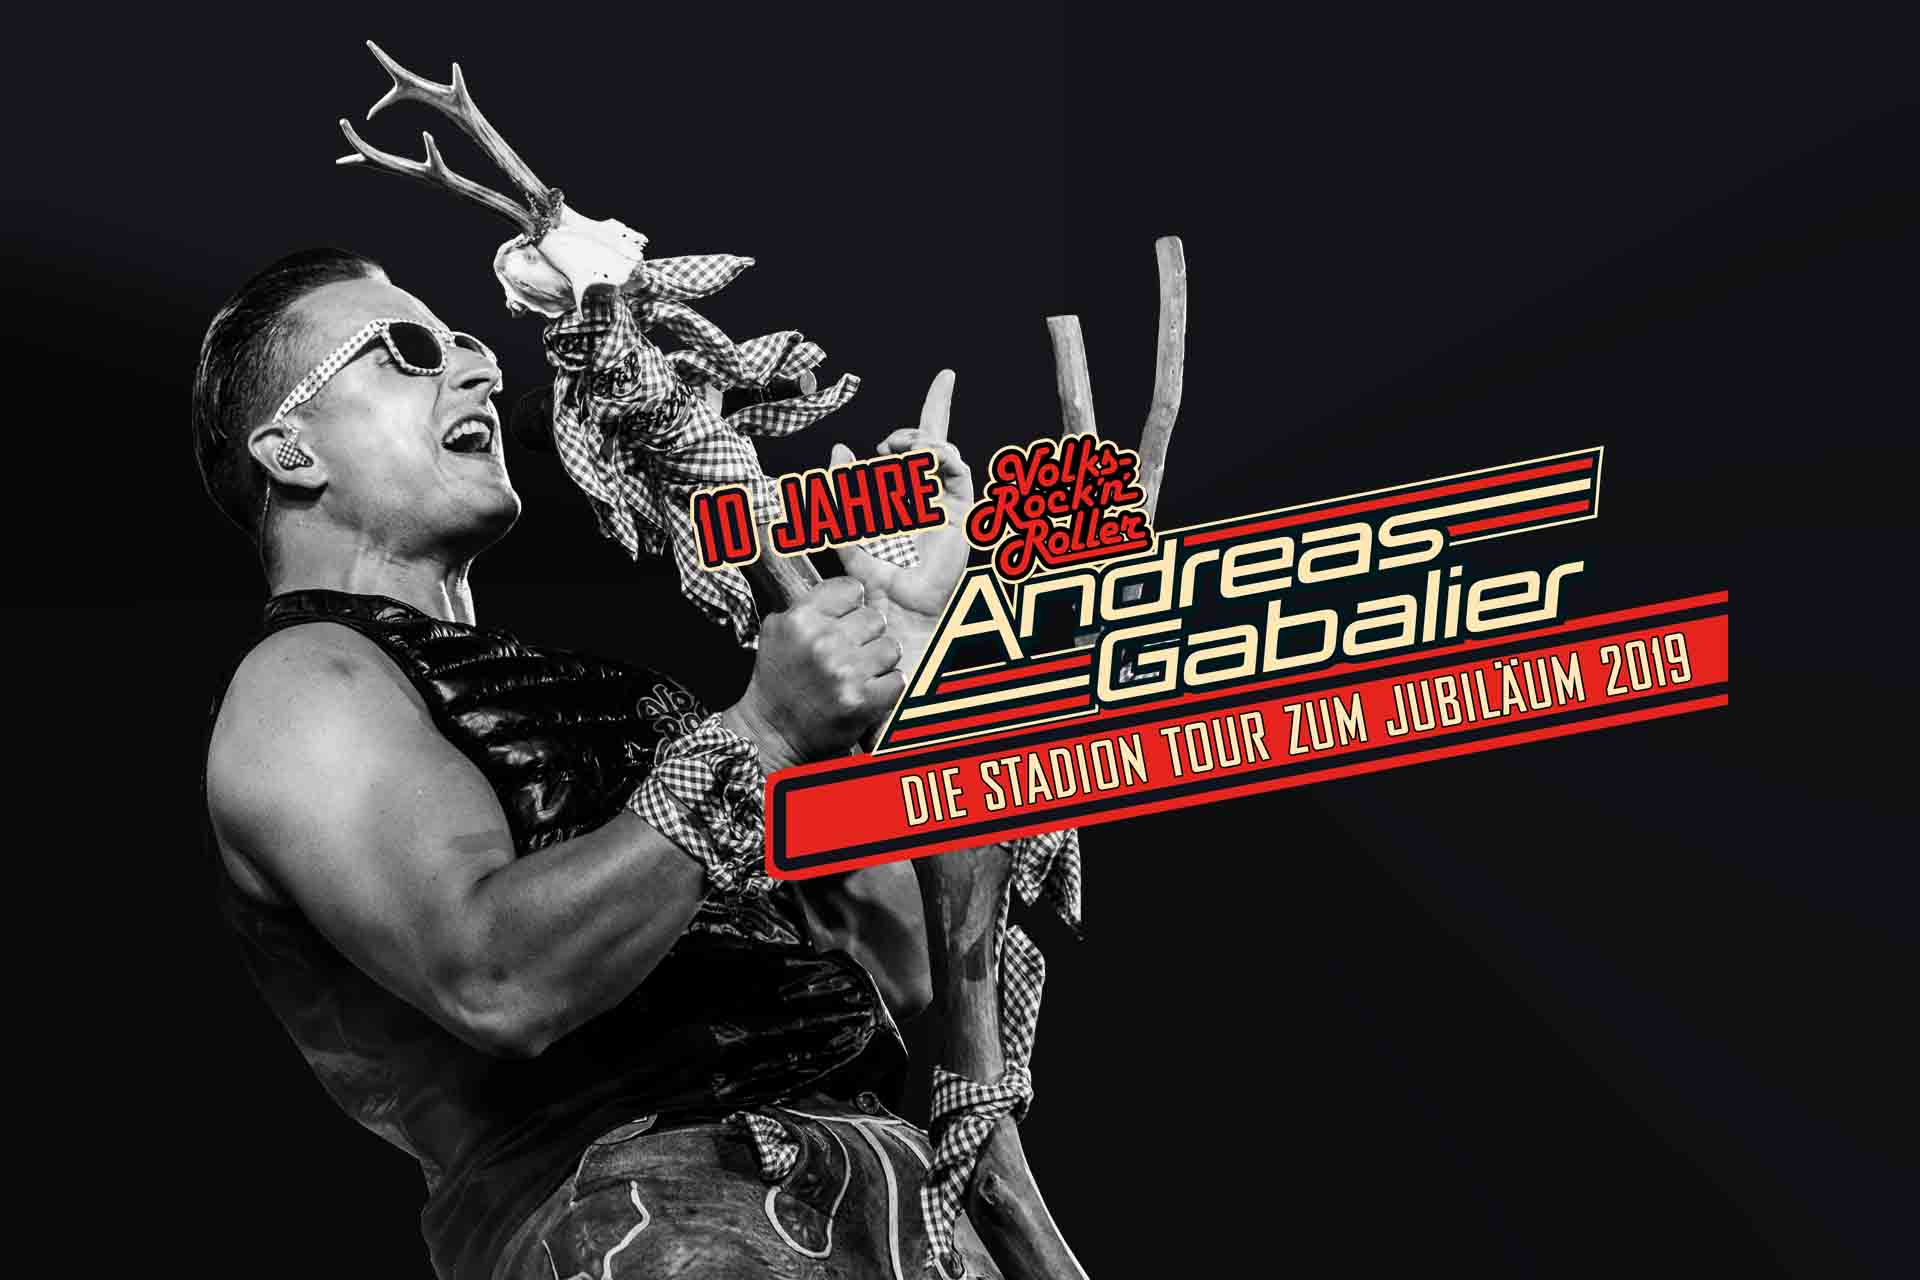 Andreas Gabalier Stadion Tour